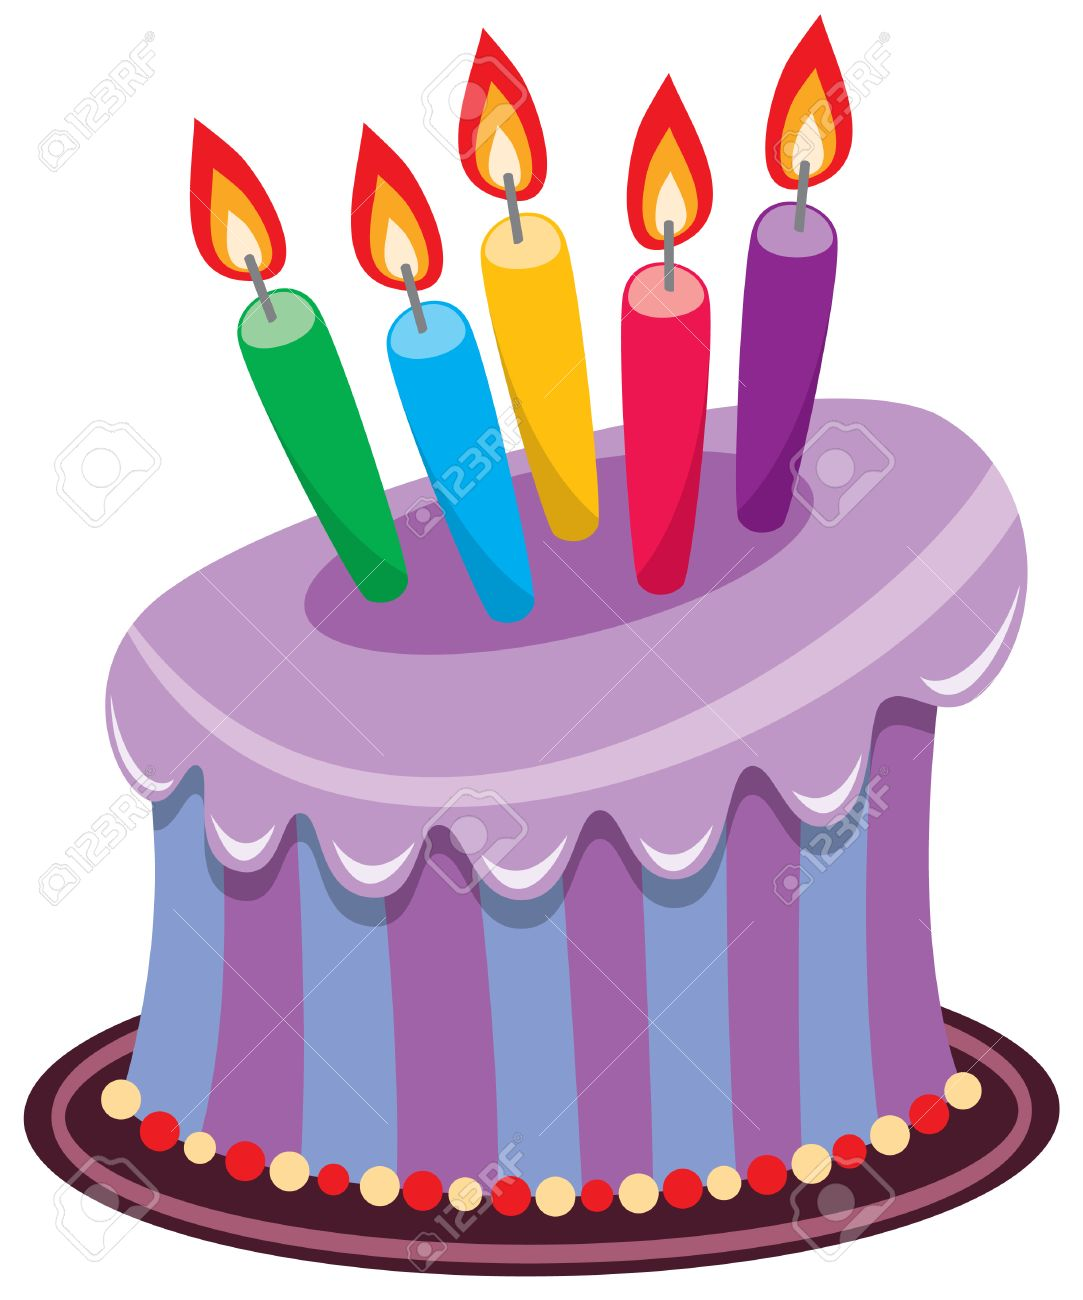 vector birthday cake with burning candles royalty free cliparts rh 123rf com vector birthday cake png vector birthday cake png